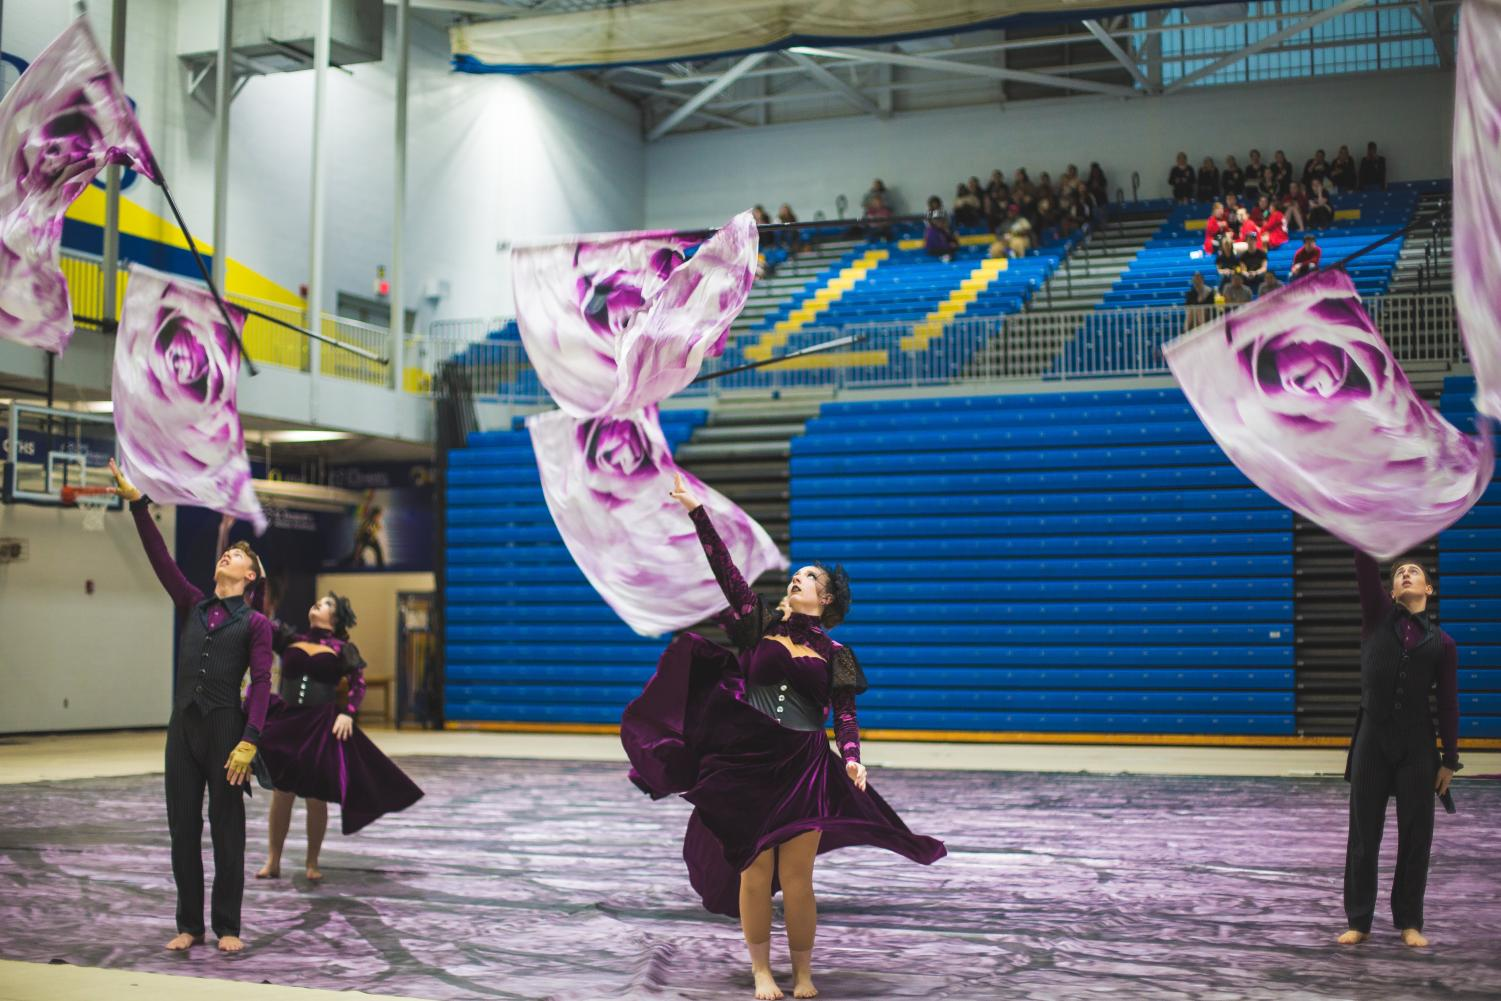 Ben Lanier (10), Jenna Yeager (10), and Caden McGivlery (9) perform at the O'Fallon Township winter guard competition.